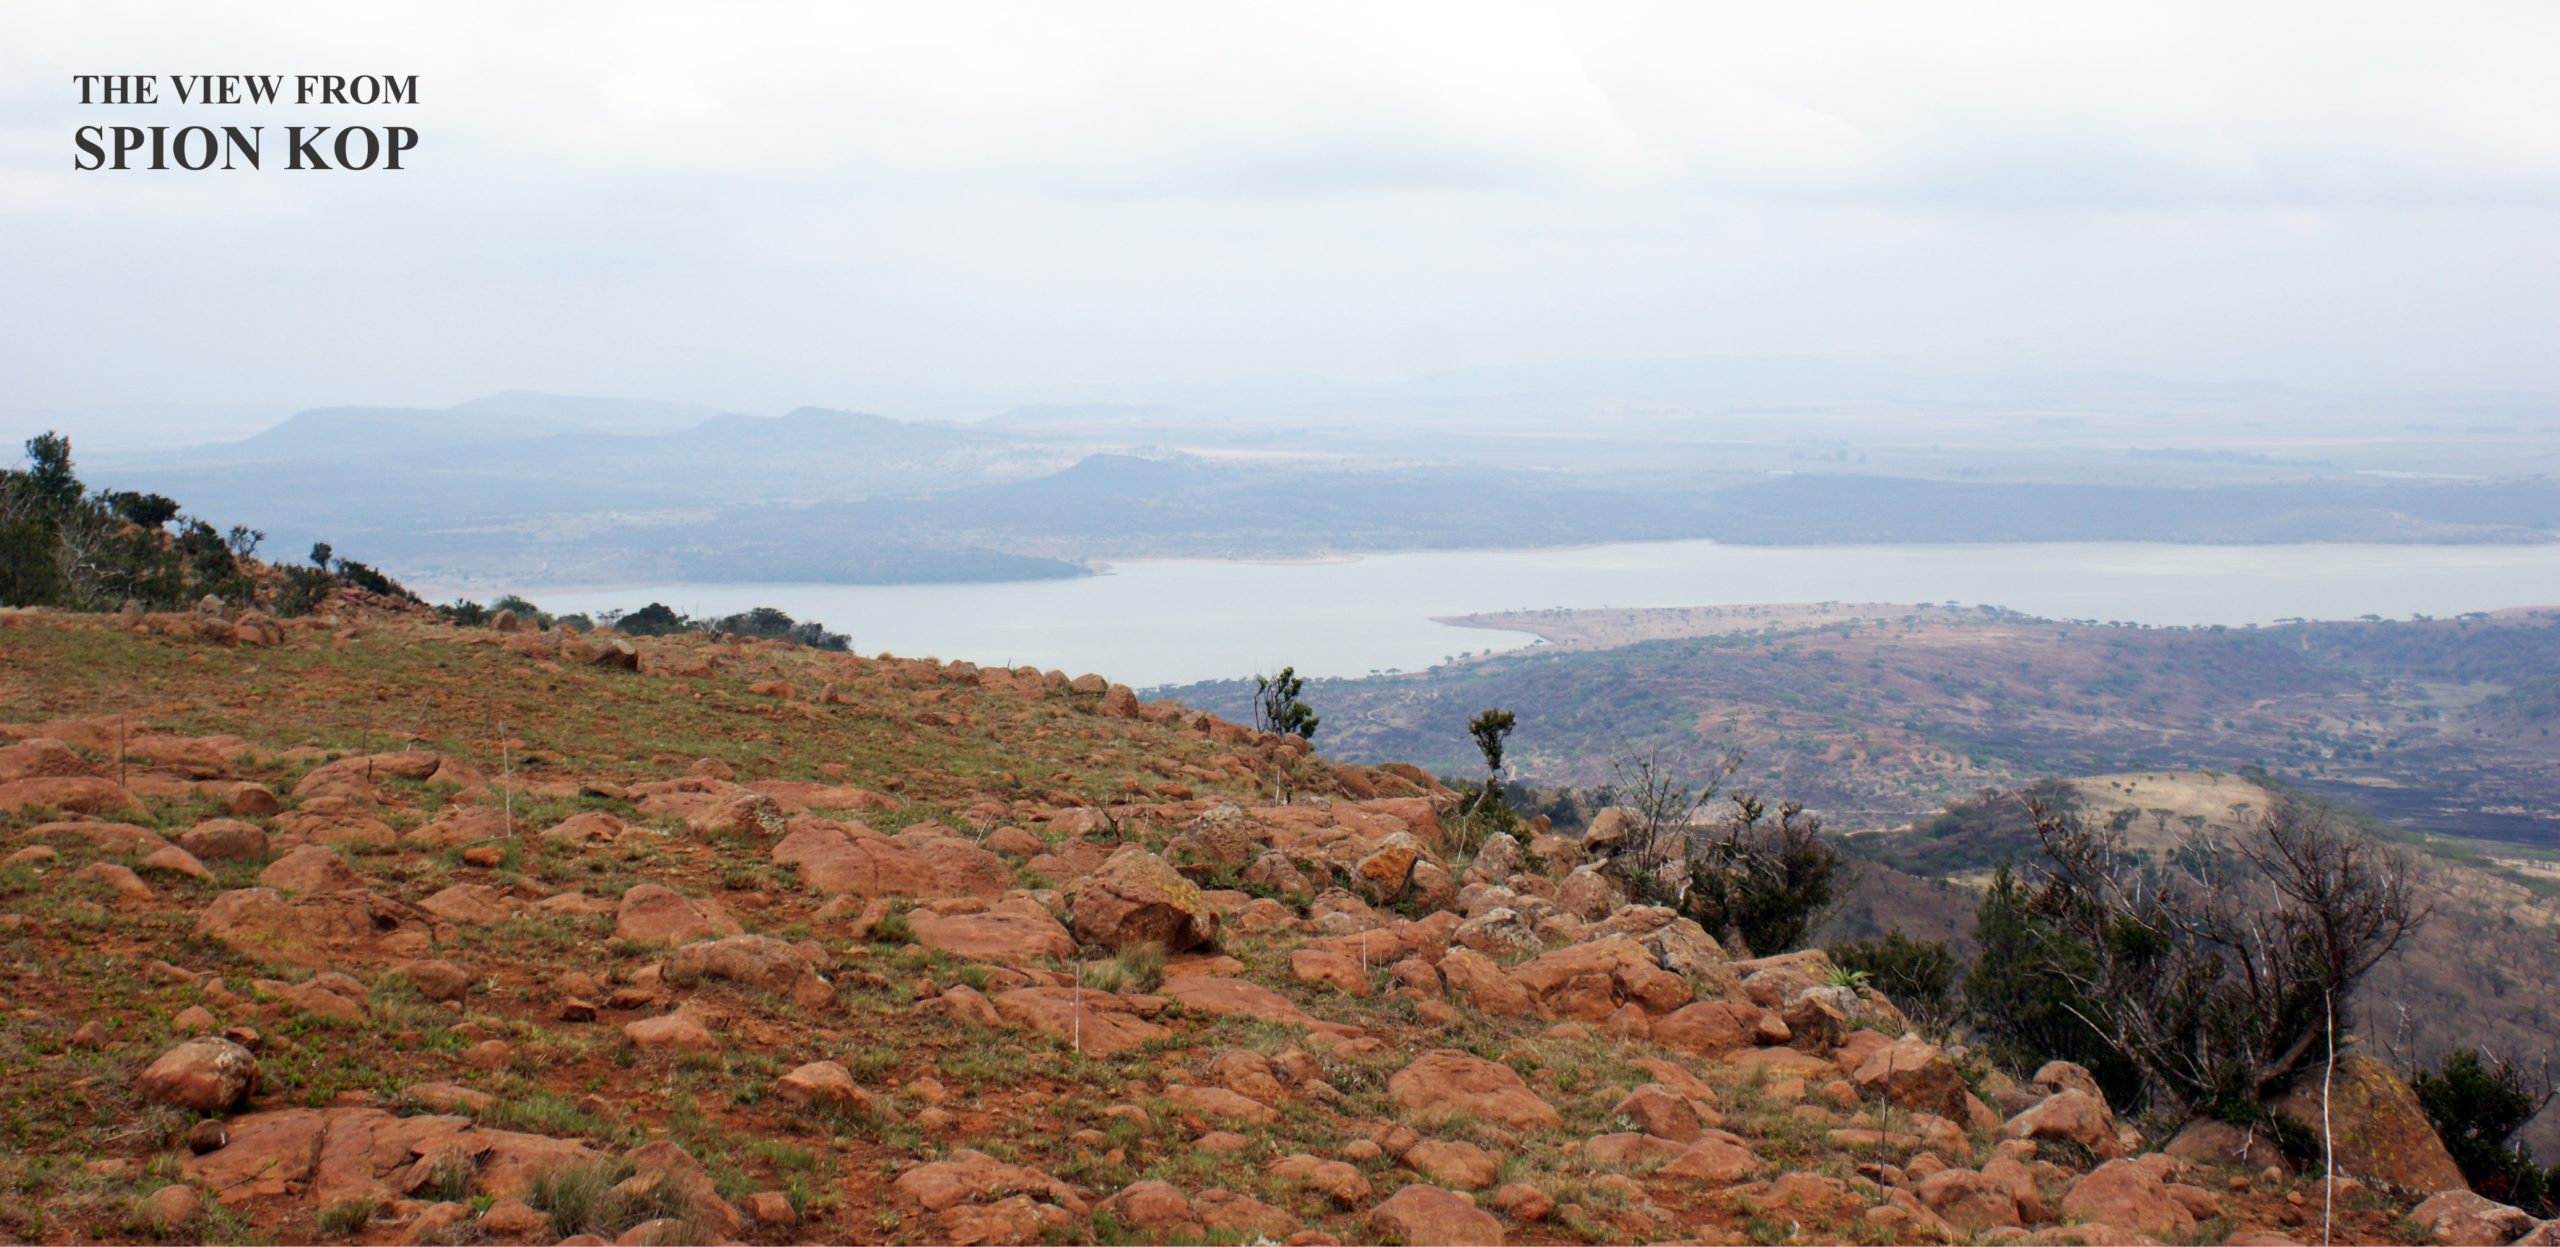 The view from SPION KOP